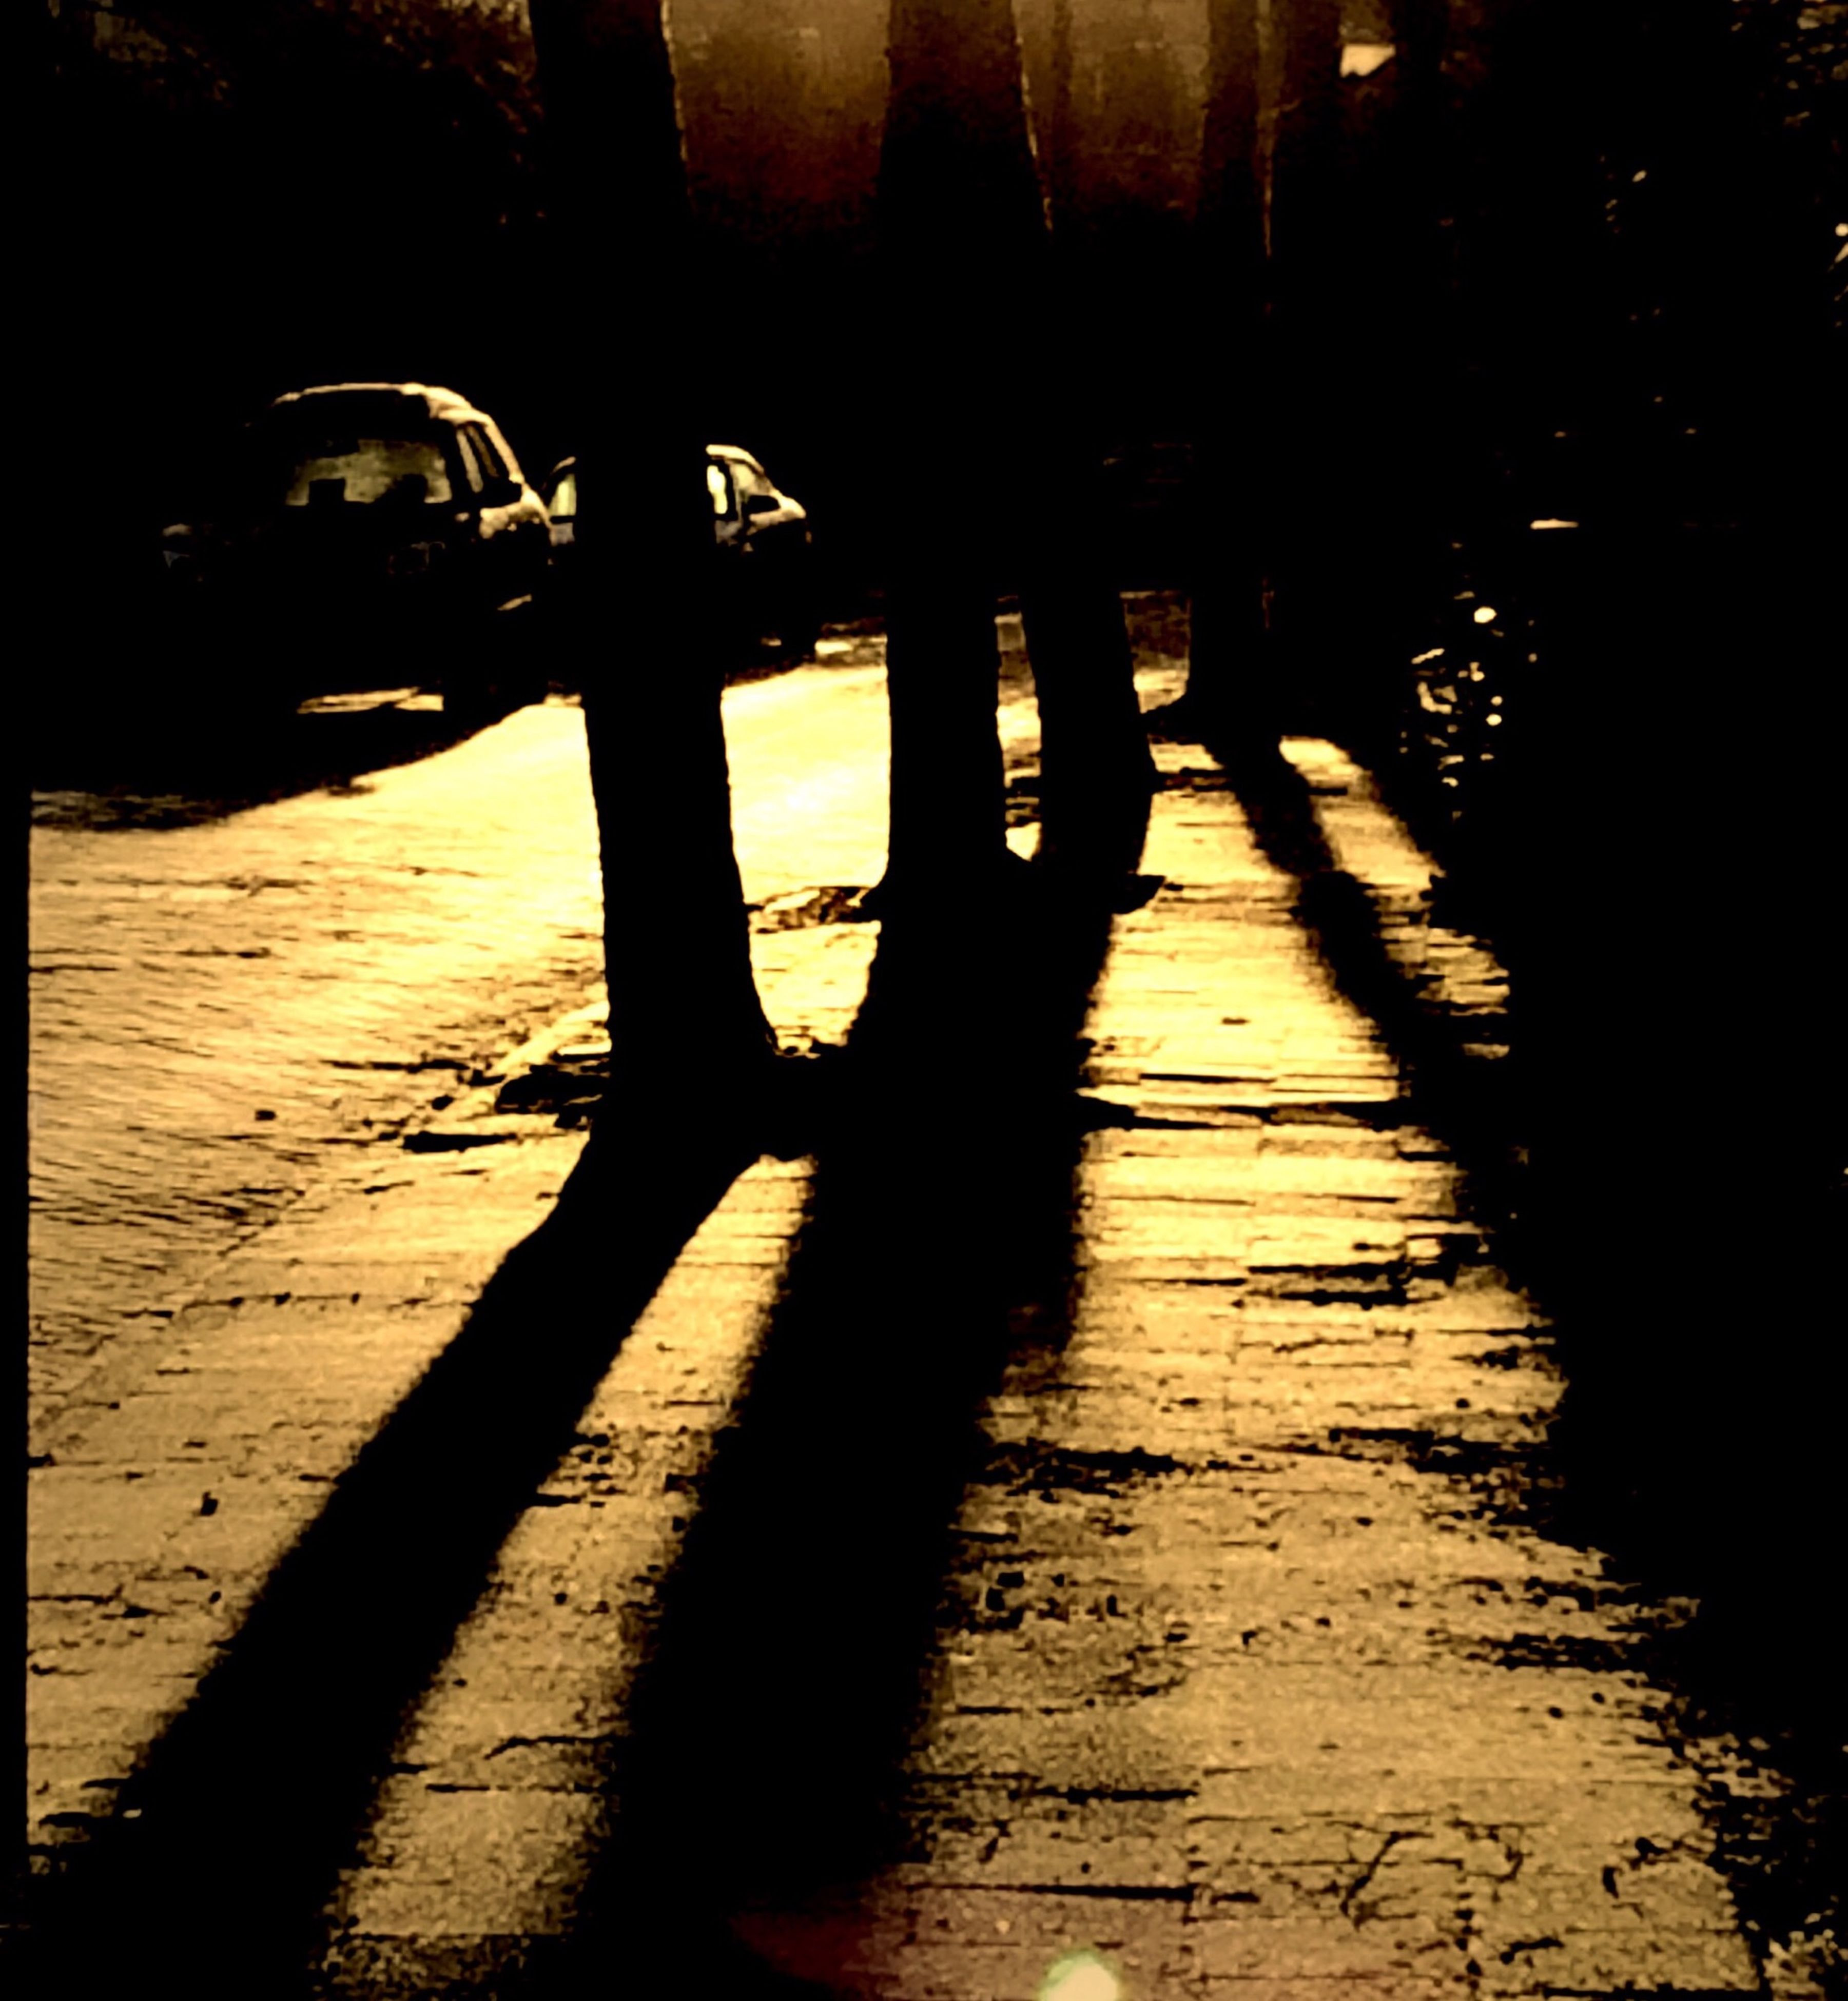 silhouette, shadow, sunlight, sunset, the way forward, street, sidewalk, sun, outdoors, footpath, transportation, walkway, nature, tranquility, built structure, empty, wood - material, in a row, dark, no people